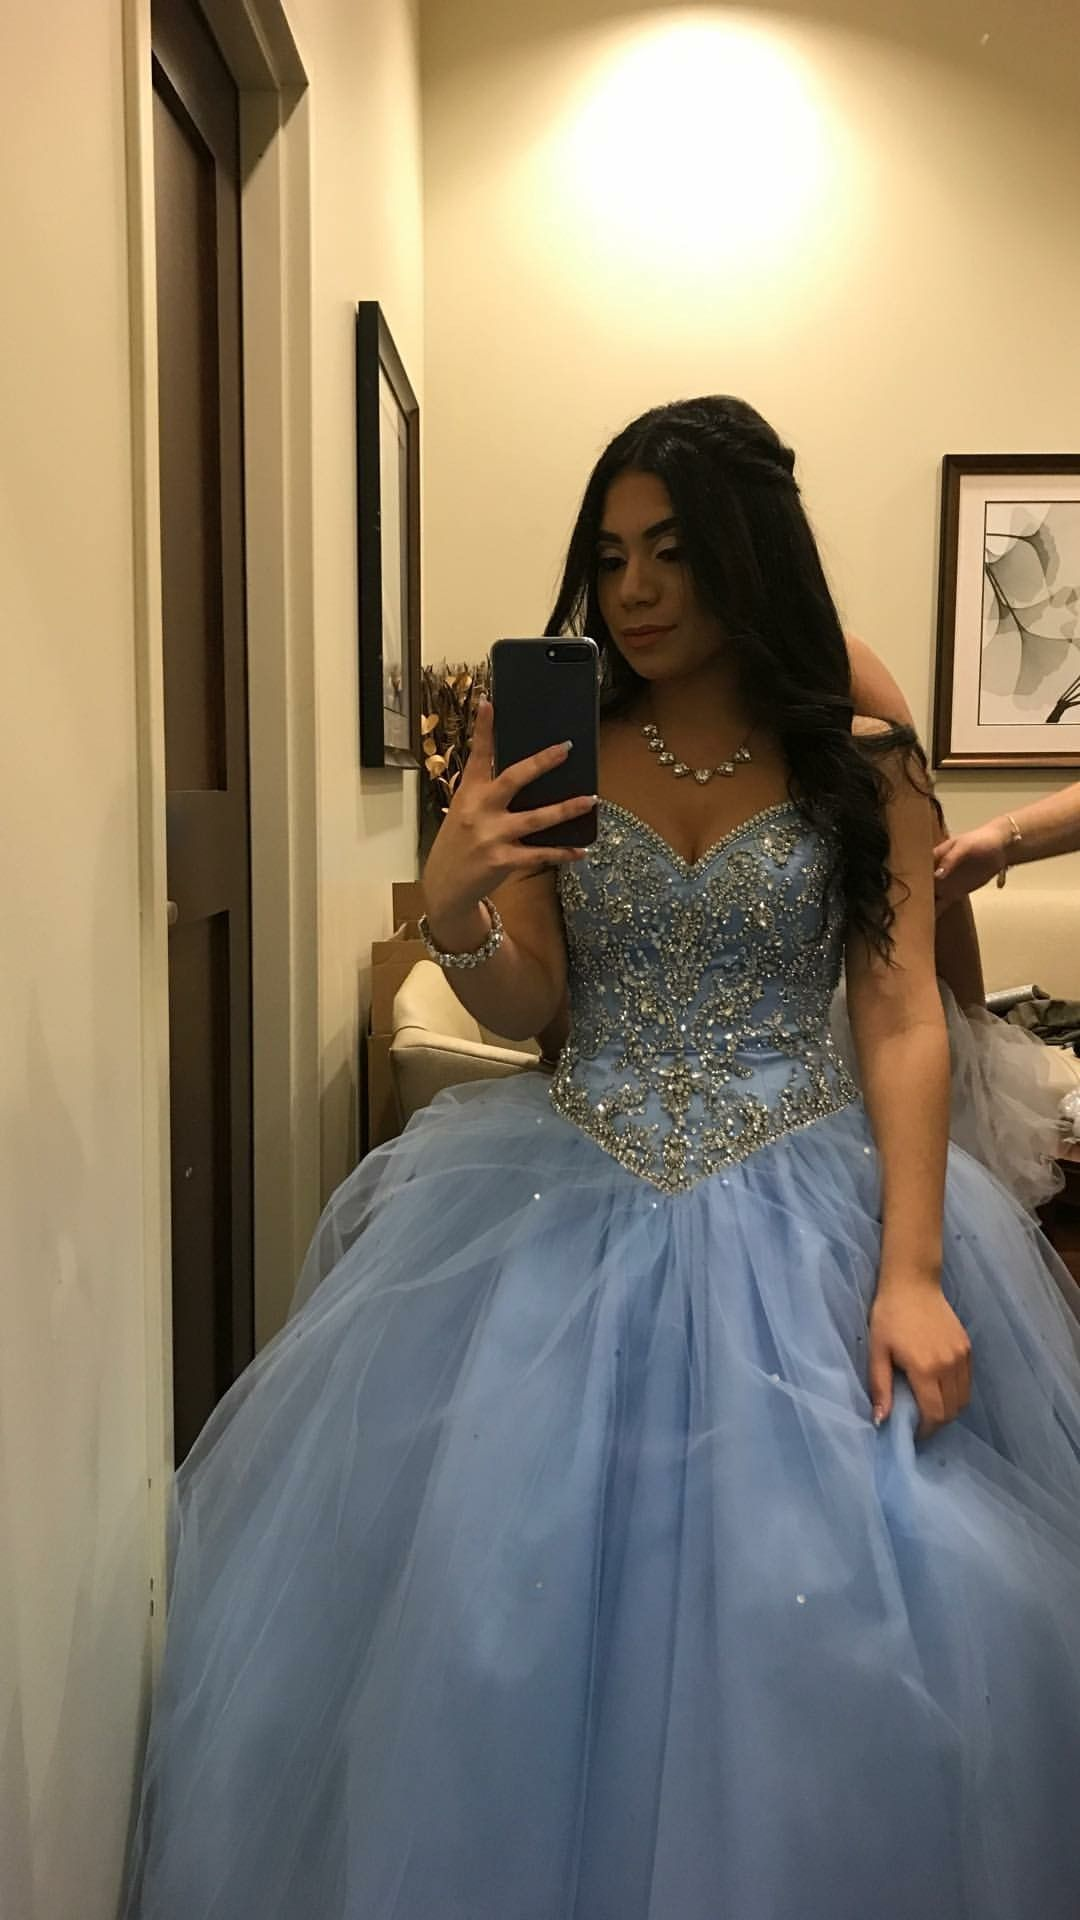 Park Art|My WordPress Blog_What To Wear To A Quinceanera In The Winter